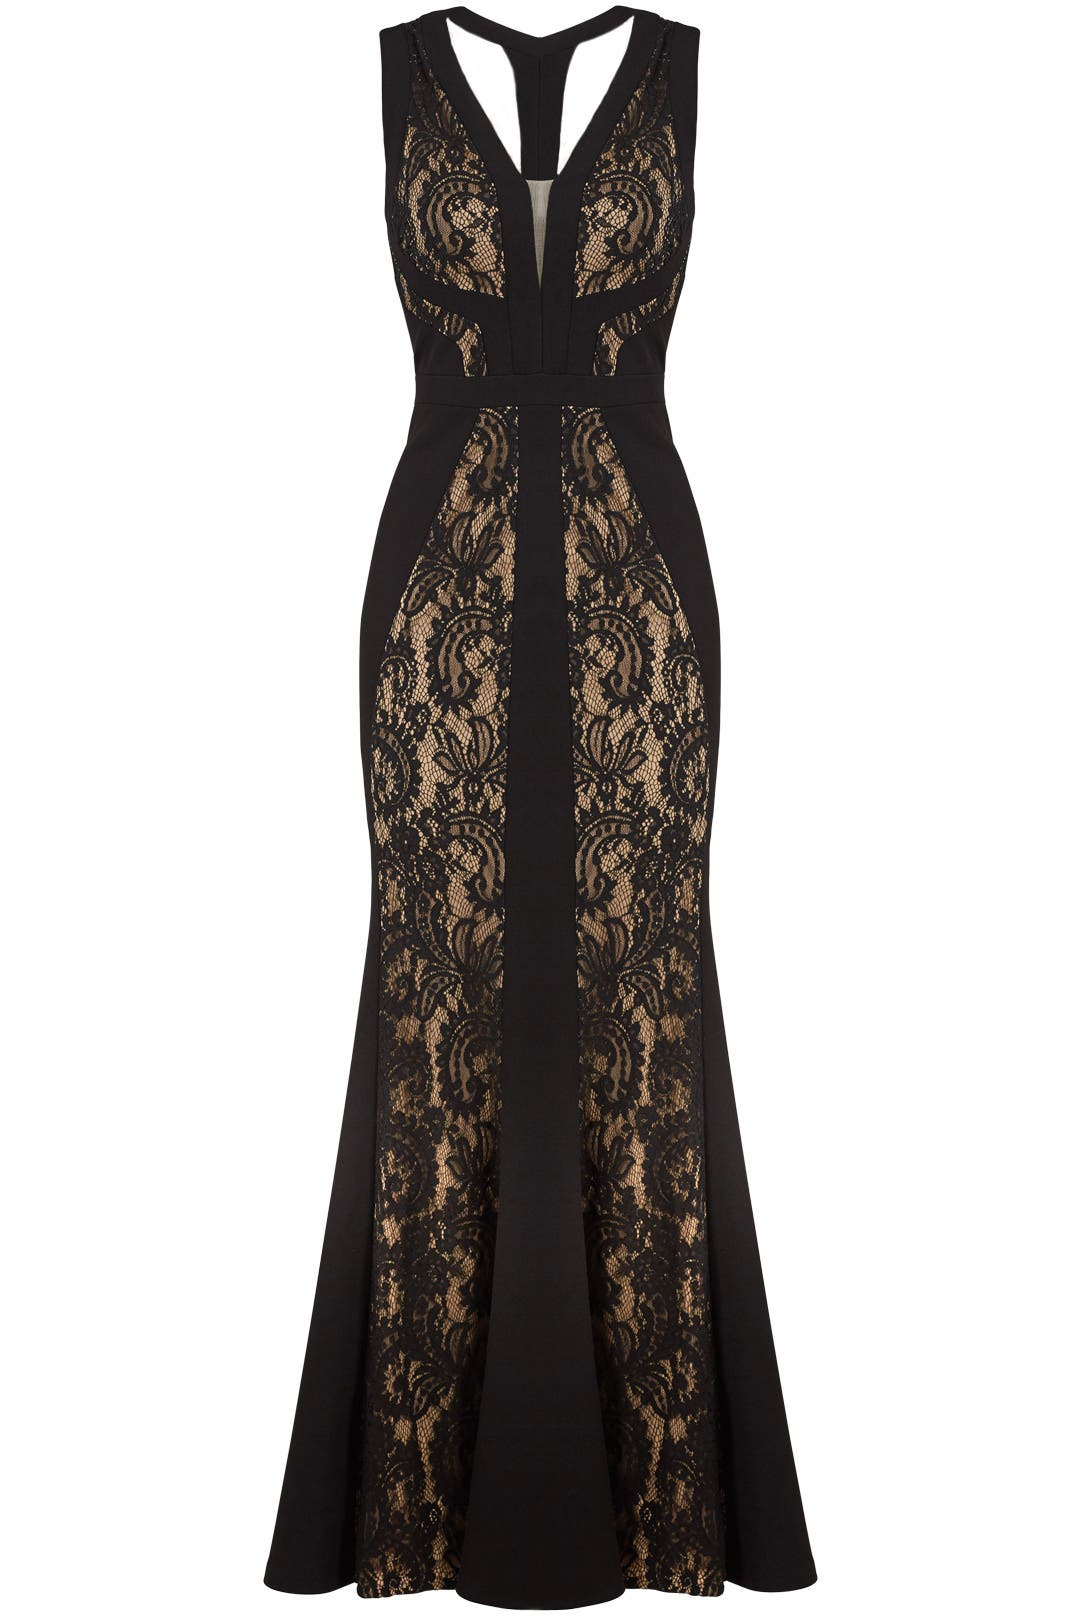 Black & Nude Lace Gown by LM Collection for $50 - $80 | Rent the Runway